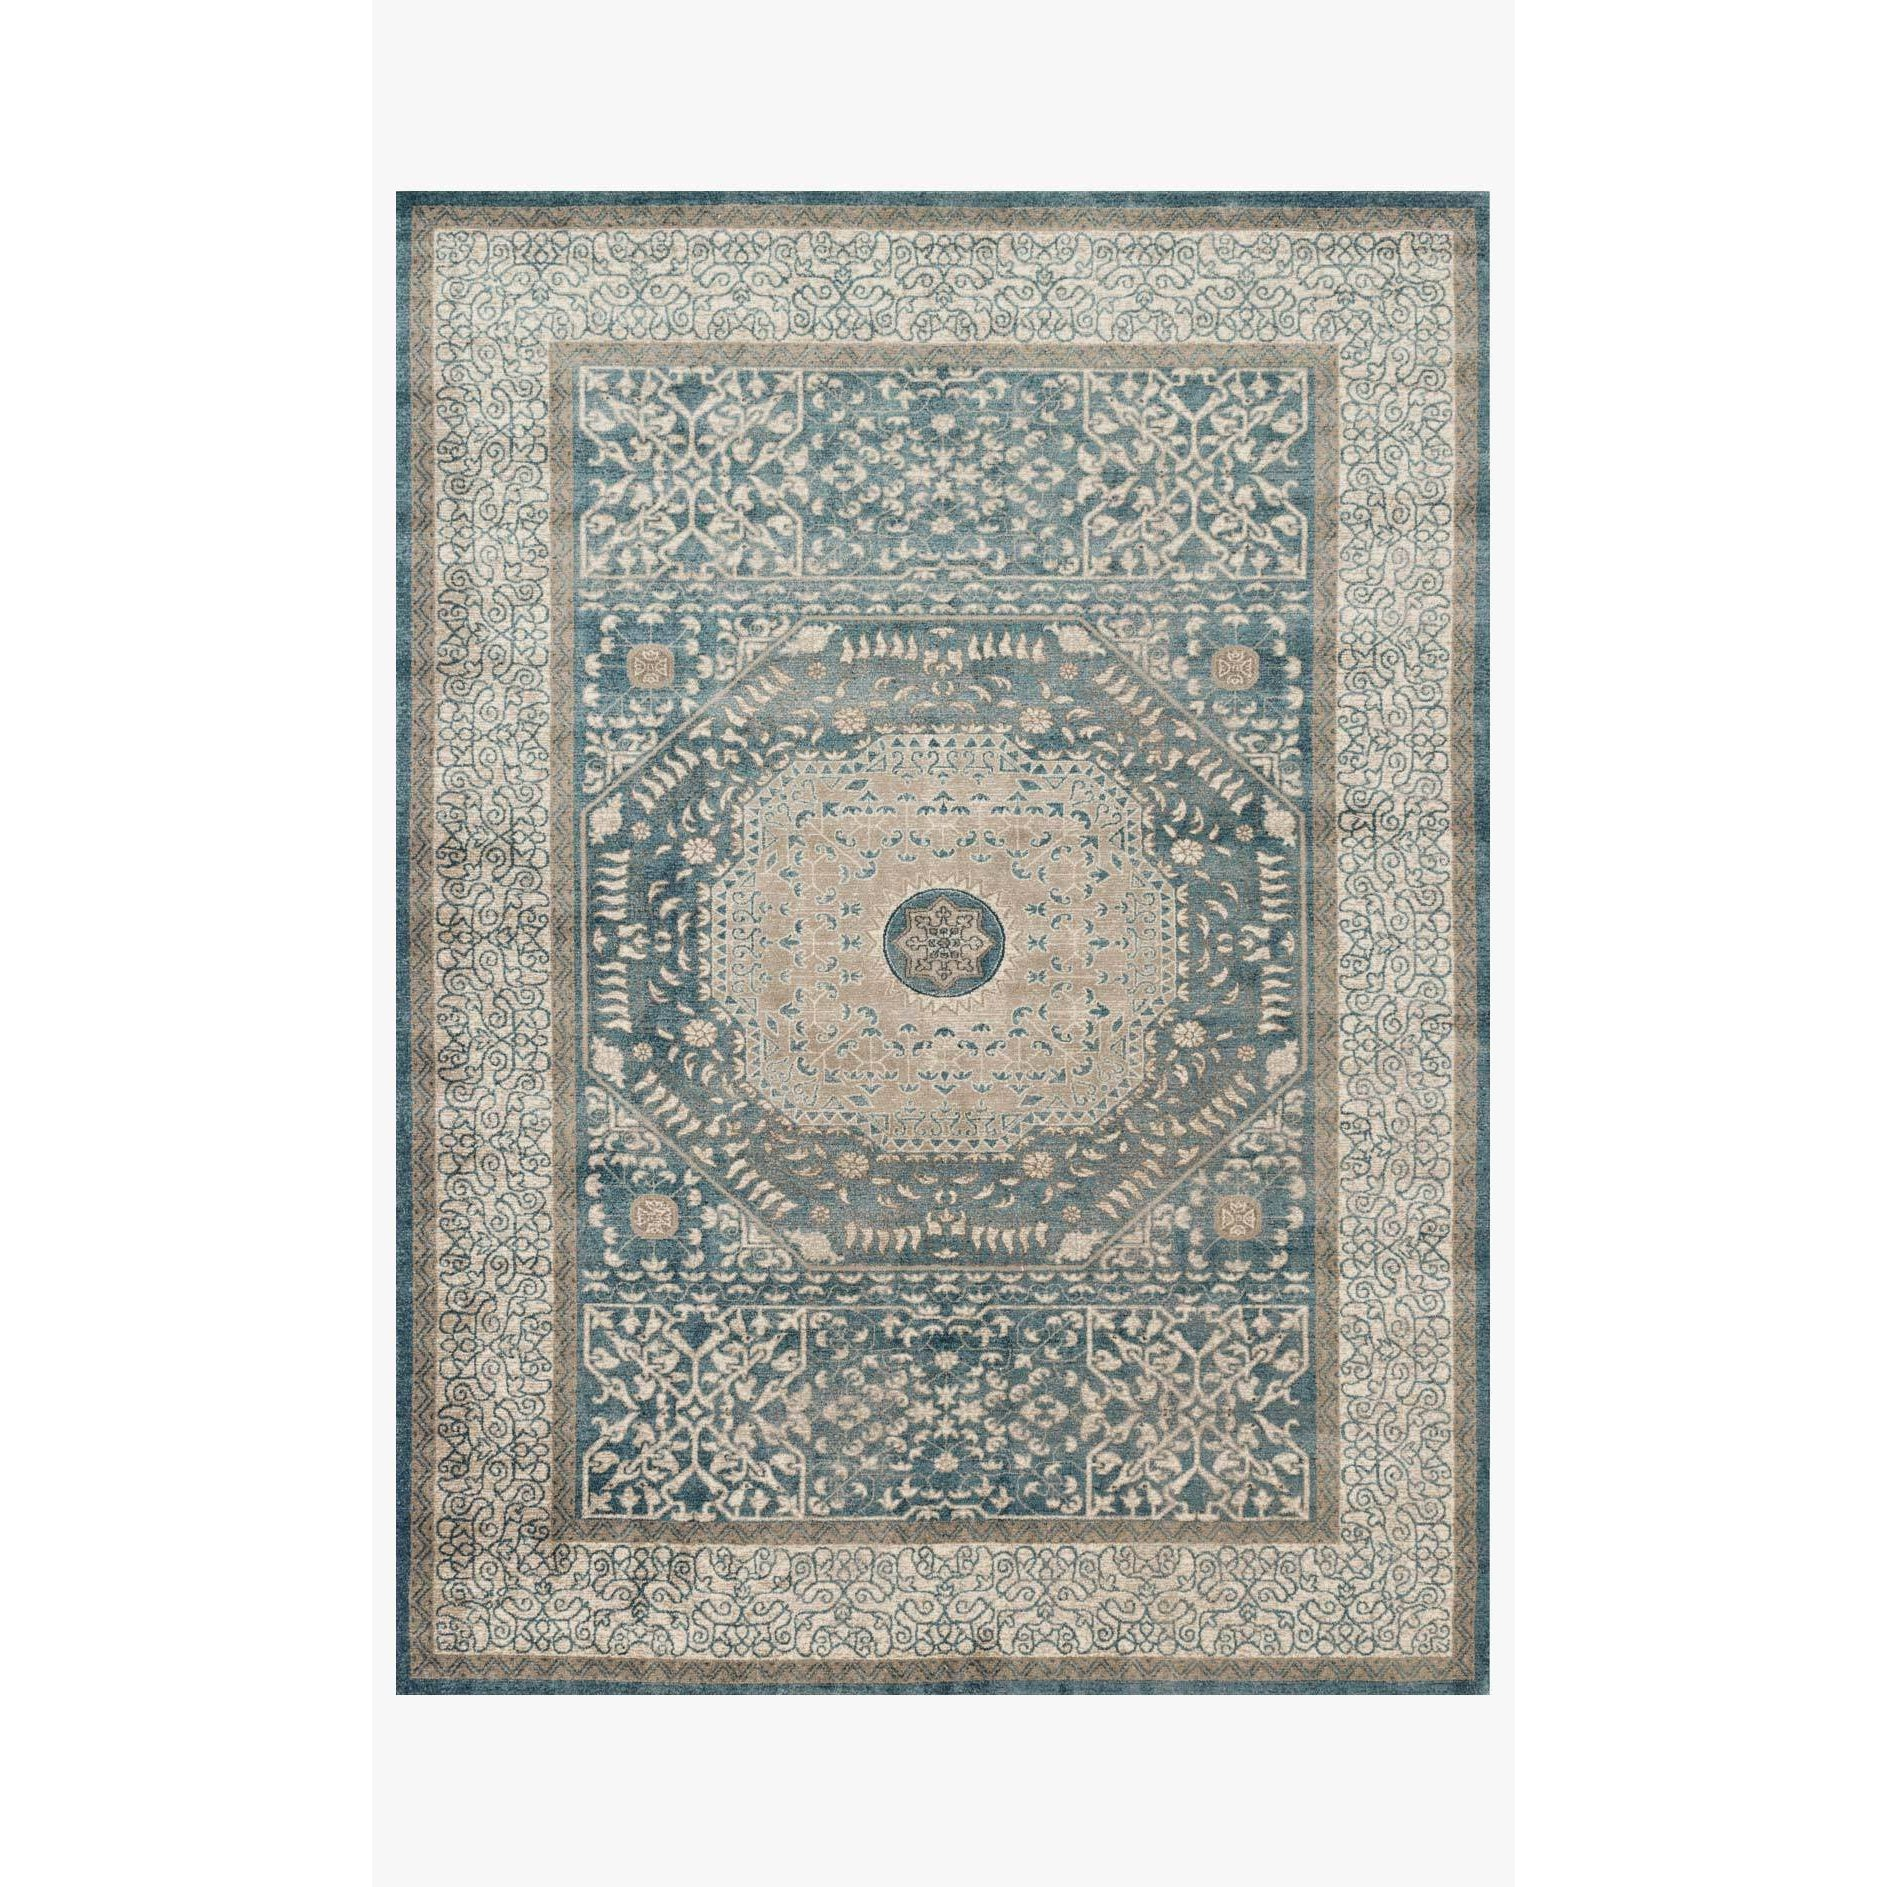 Century Rugs by Loloi - CQ-01 - Blue Sand-Loloi Rugs-Blue Hand Home